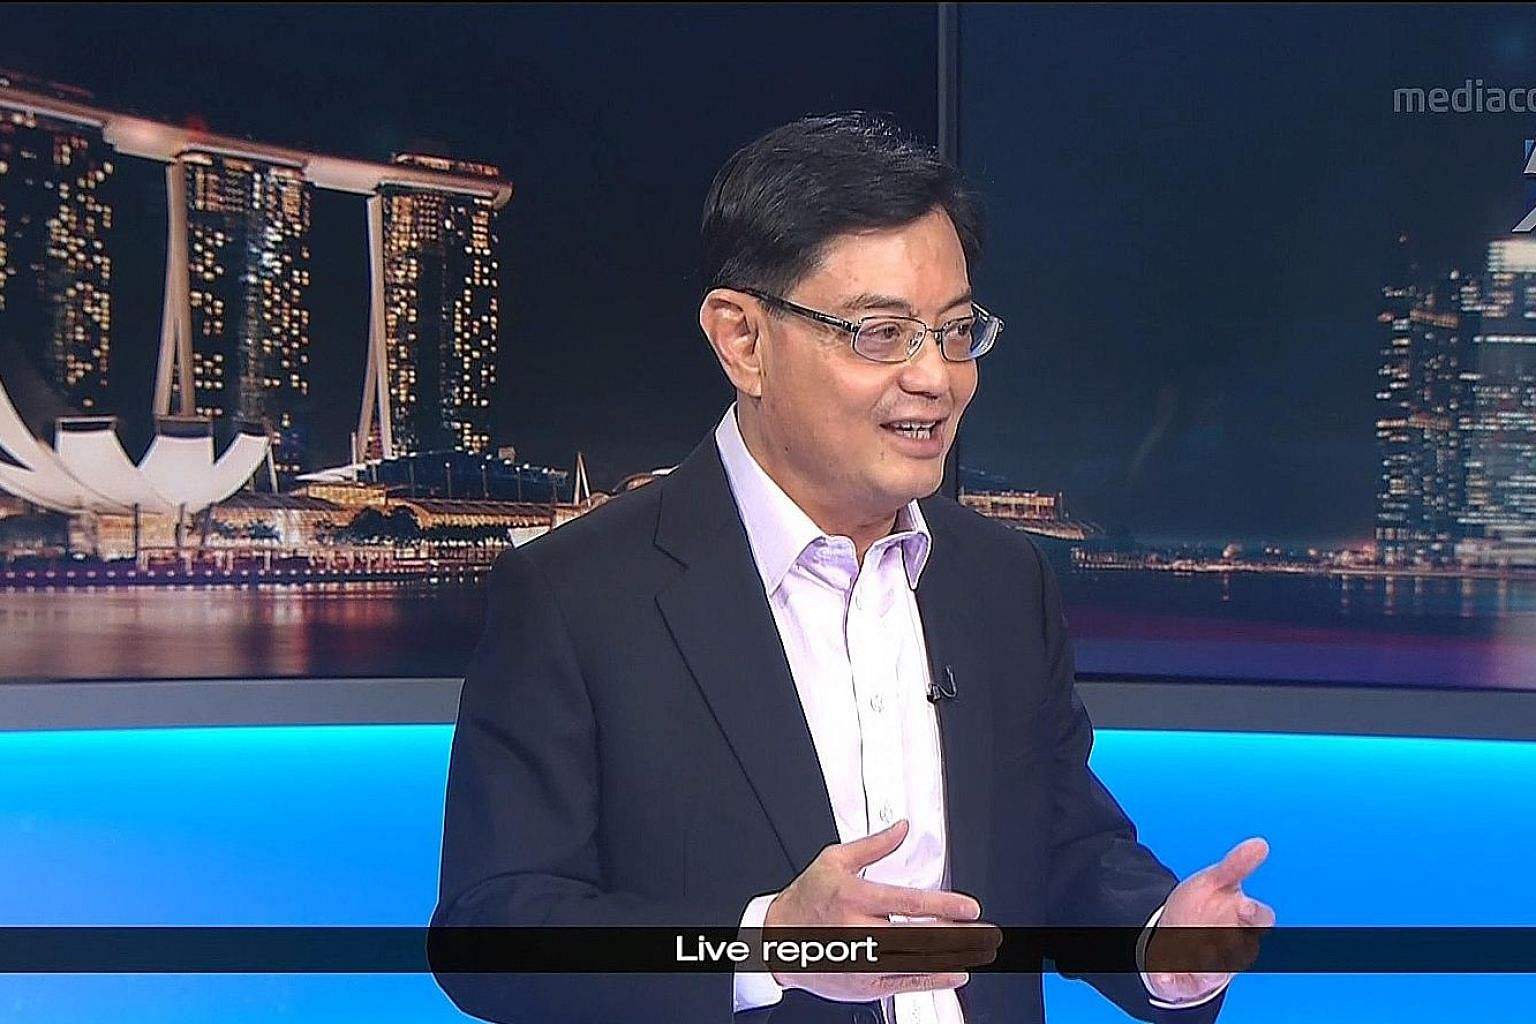 Deputy Prime Minister Heng Swee Keat said the stricter the measures governments take to fight the pandemic, the deeper the economic impact will be, and self-employed workers are a key group needing help.